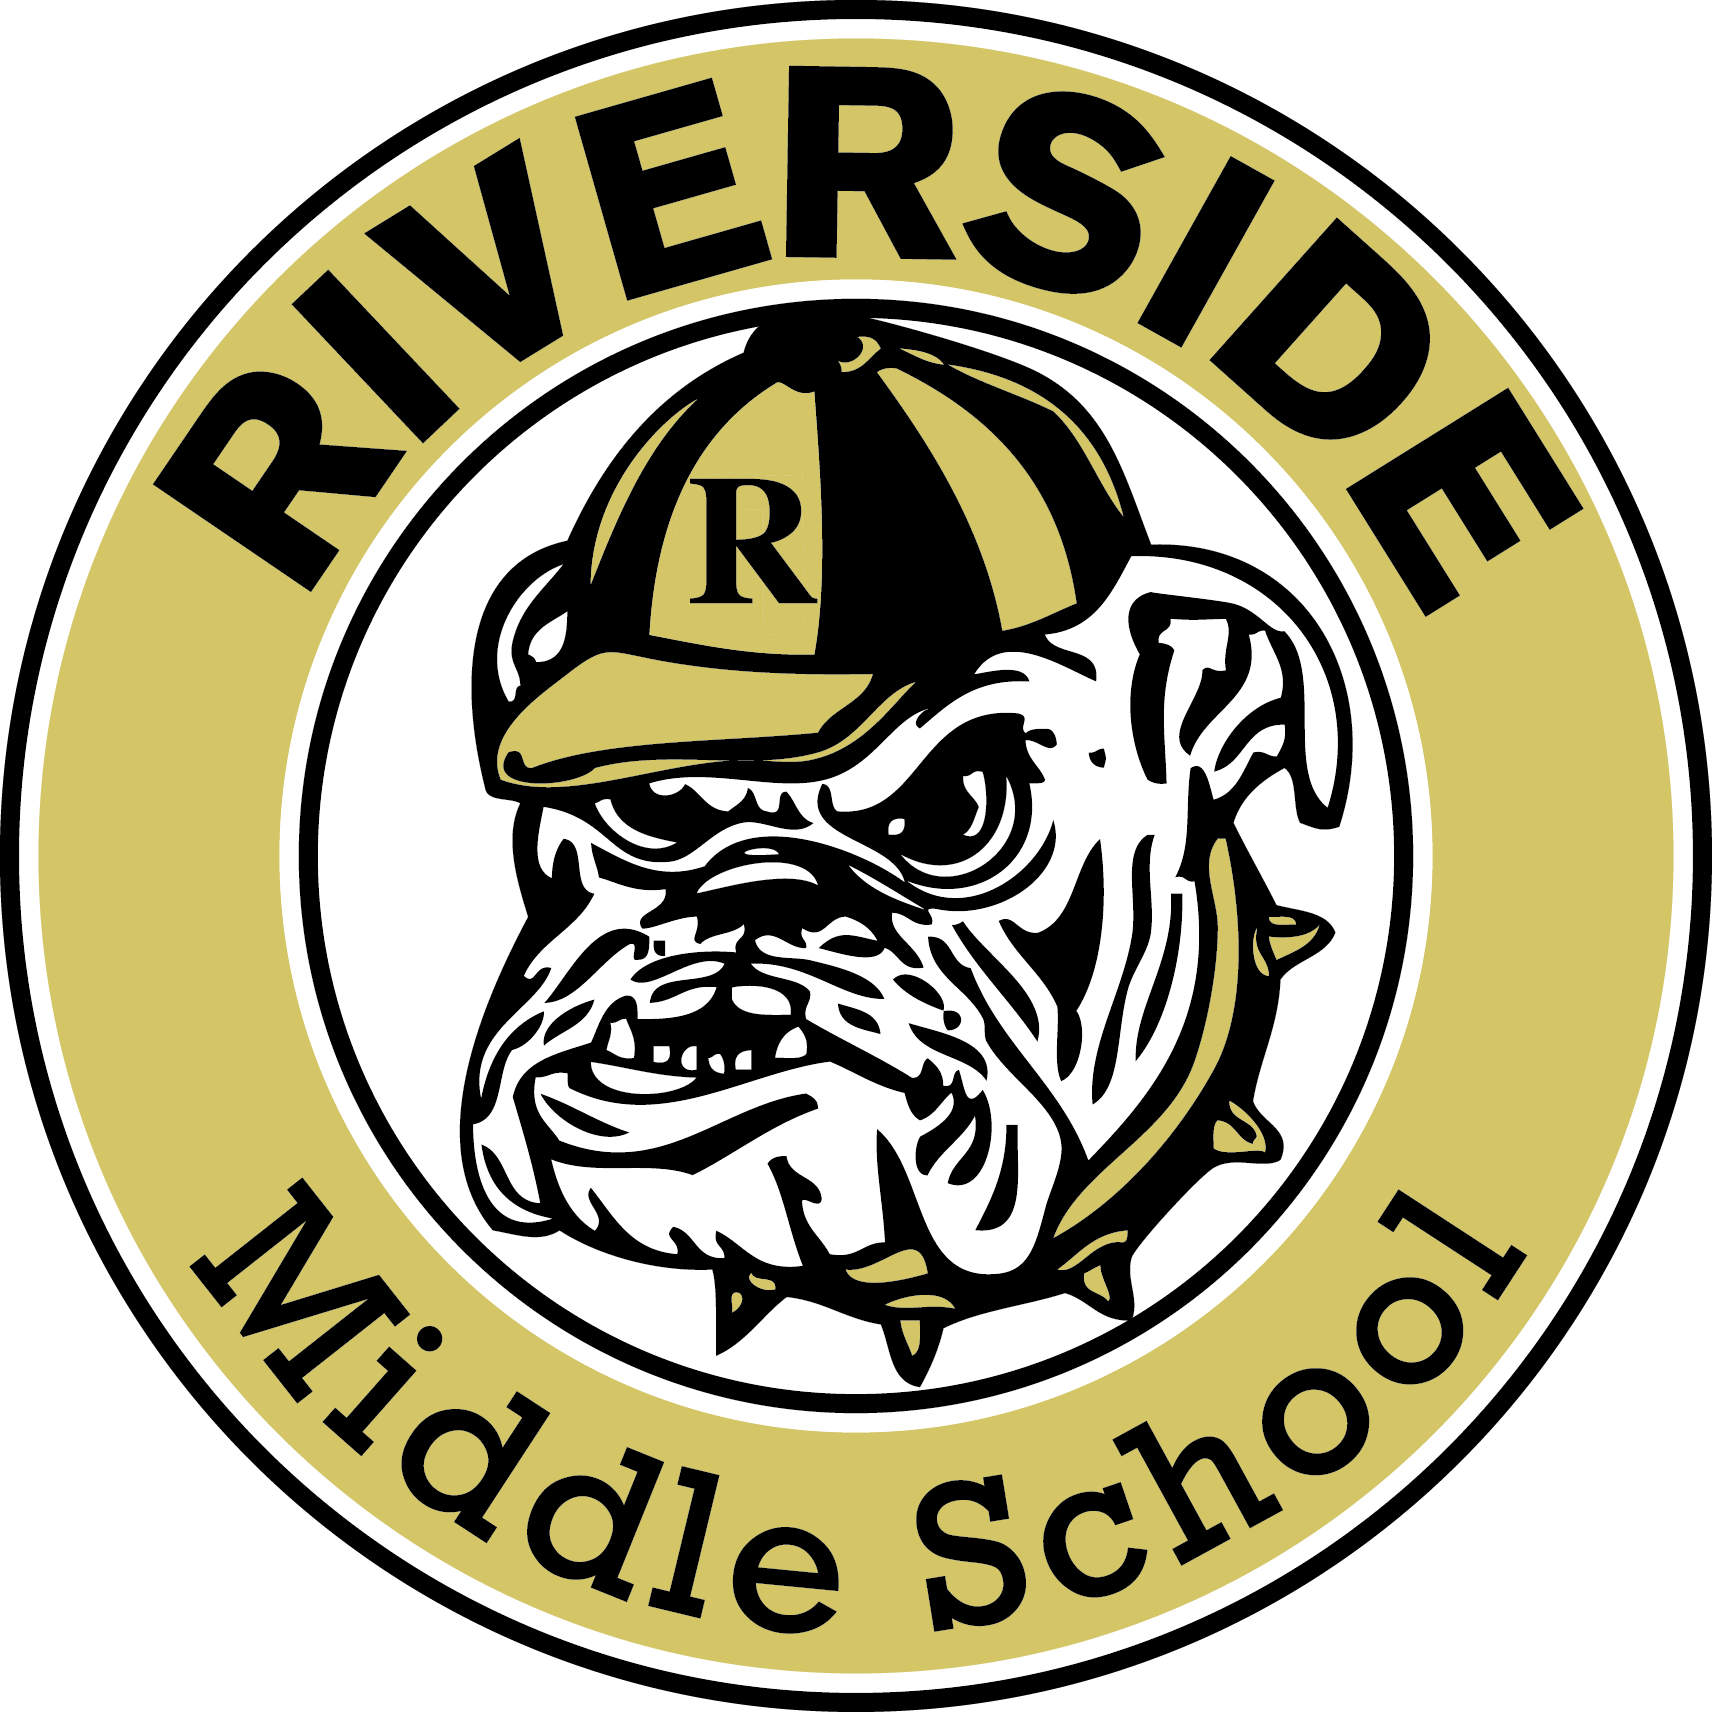 Home  Riverside Middle. Joomla Hosting Templates Prepaid Burial Plans. What Is The Address Of The White House. Virtual Business Addresses Auburn Bank Online. International Education Masters Programs. Comp Rehab Winston Salem Nc Send Via Email. Call Center Outsourcing Networx Alarm System. Cafeteria Table And Chairs Taget Store Hours. Nursing School In San Antonio Texas